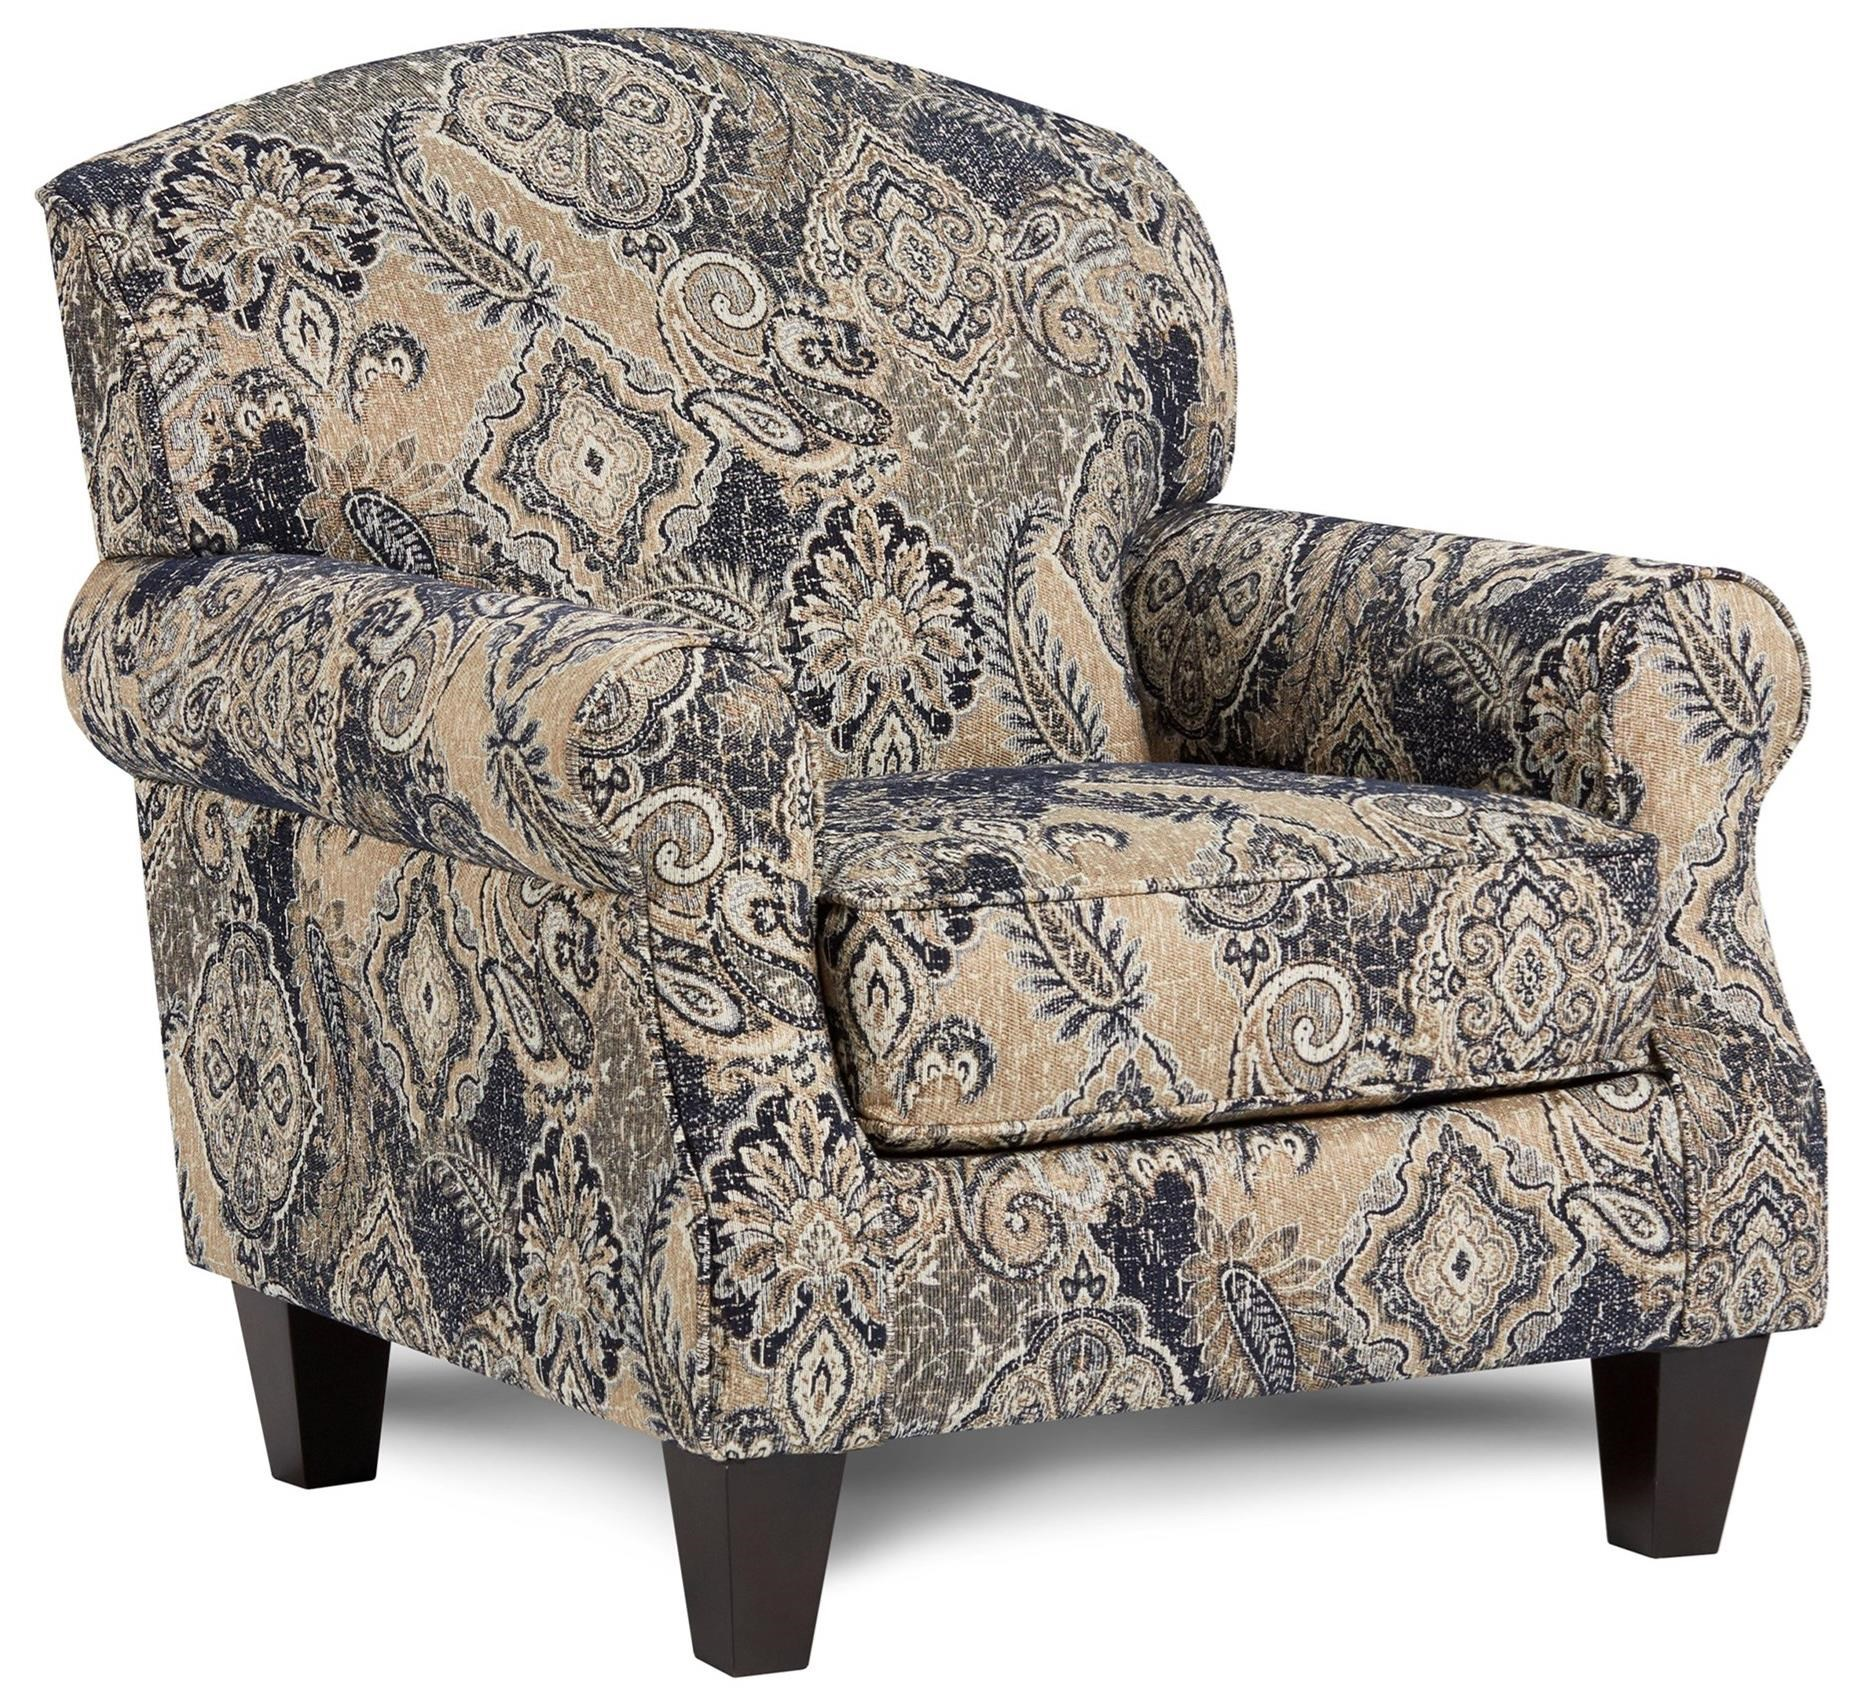 532 Accent Chair by Fusion Furniture at Lindy's Furniture Company